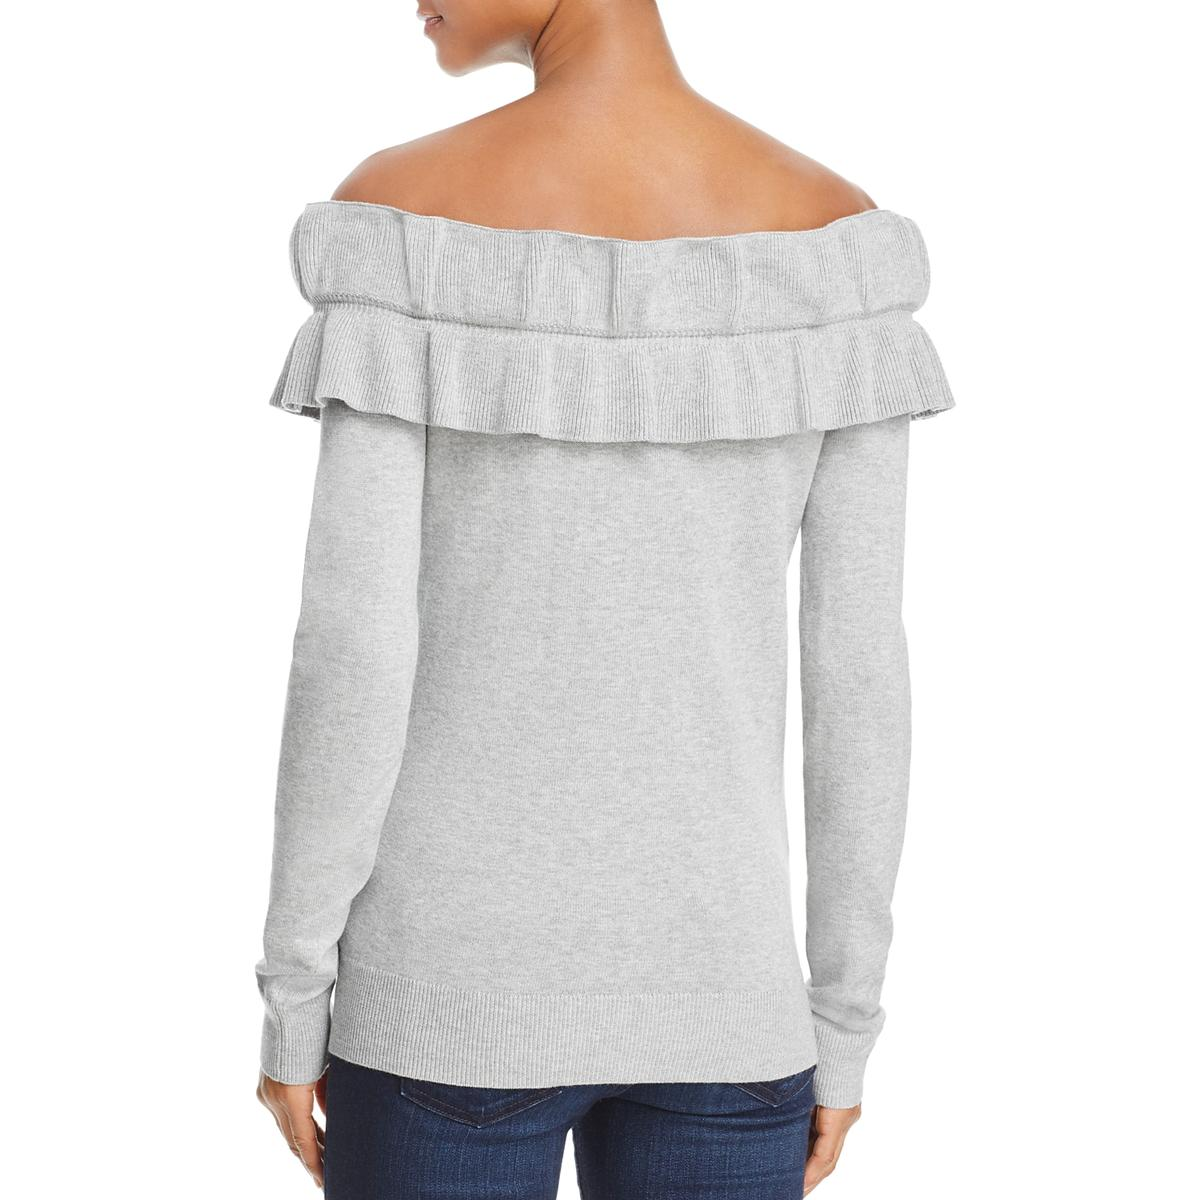 9327f657cd320 Endless Rose Womens Knit Off-the-Shoulder Pullover Sweater Top BHFO ...